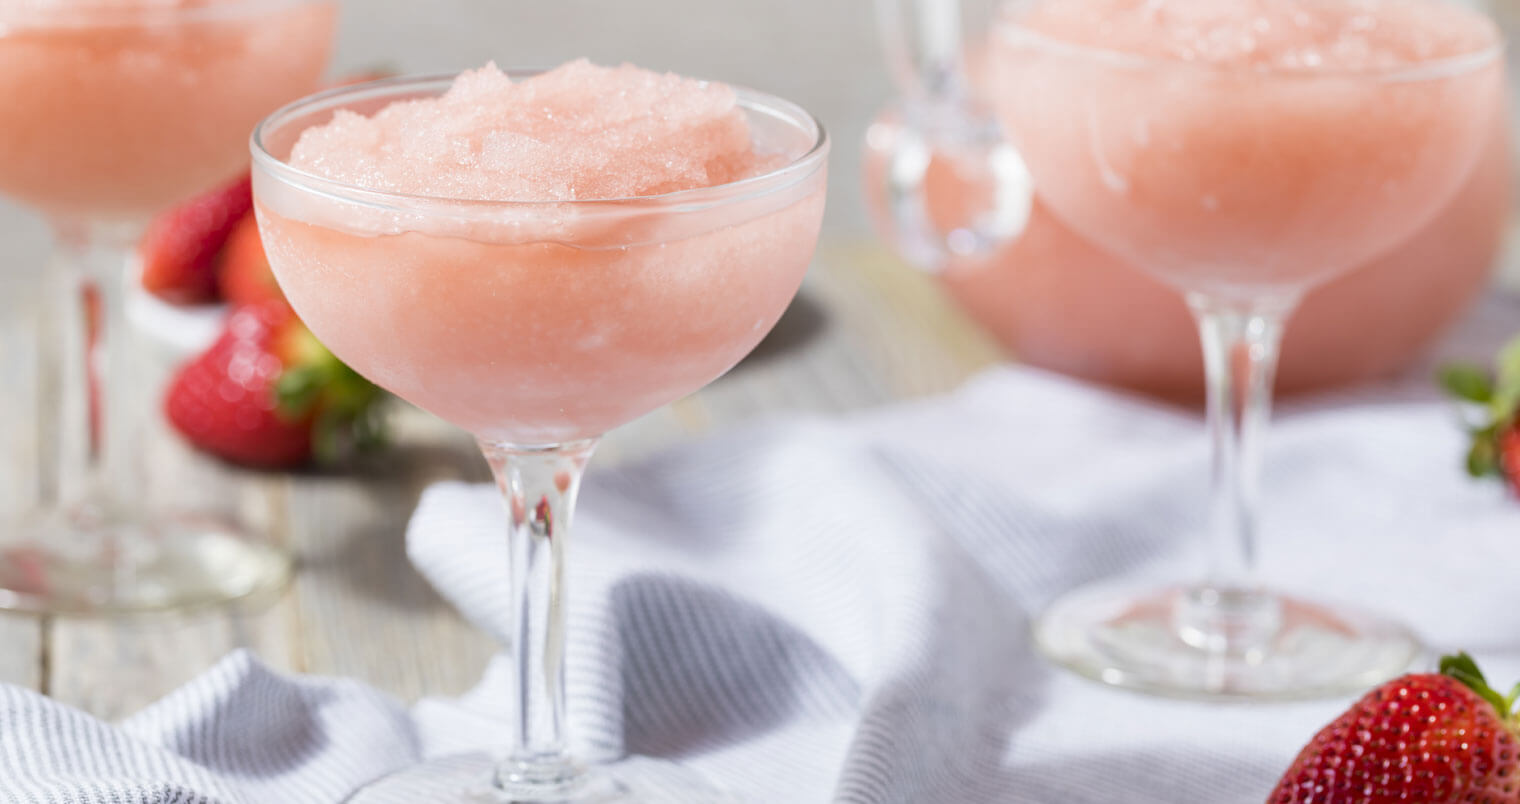 Frozen Rosé, frozen cocktails with garnish, martini glasses, featured image